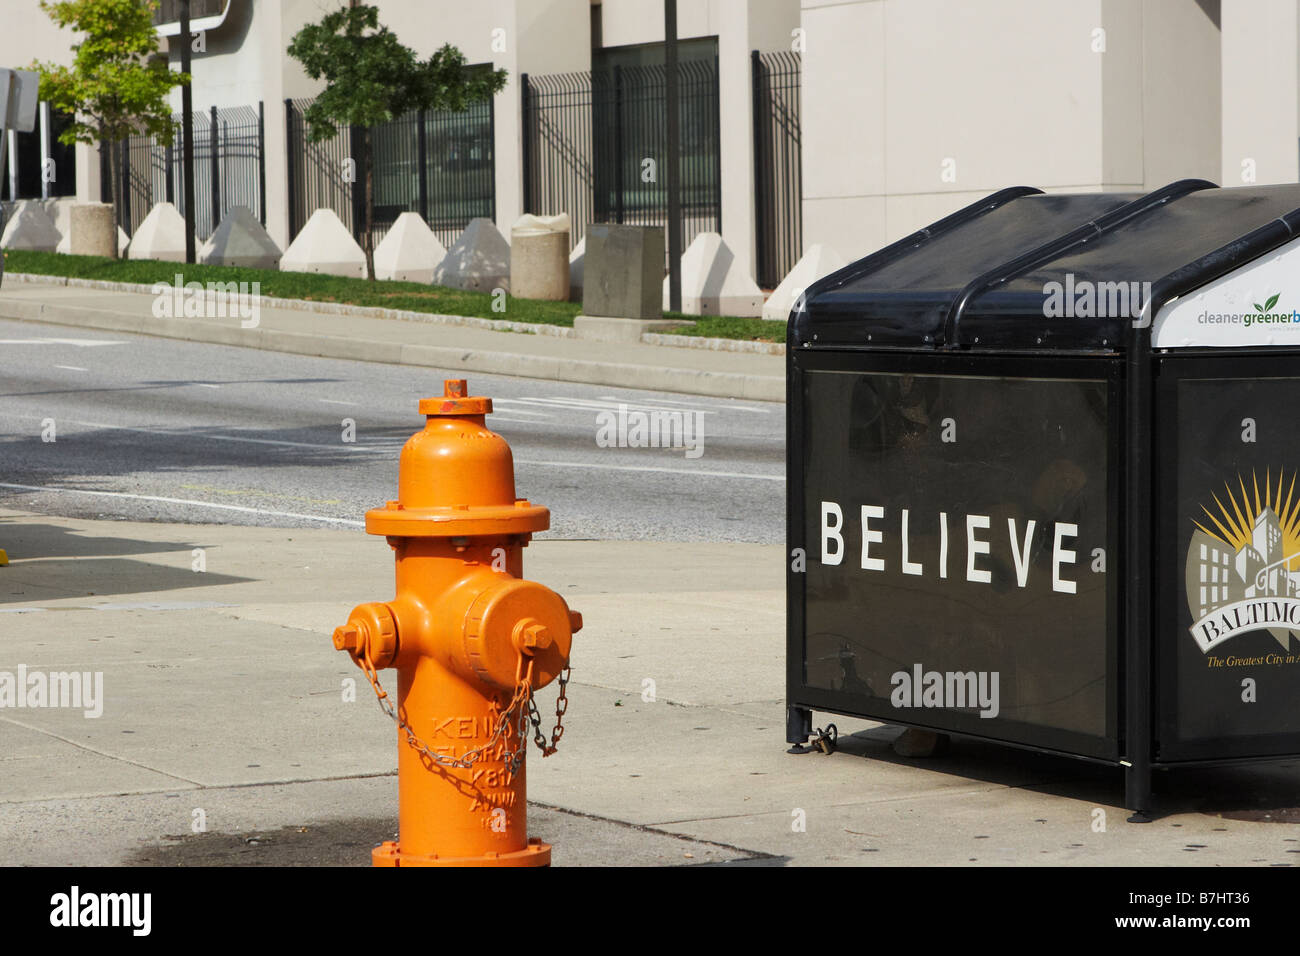 A large trash receptacle with a Believe campaign poster Baltimore Maryland - Stock Image